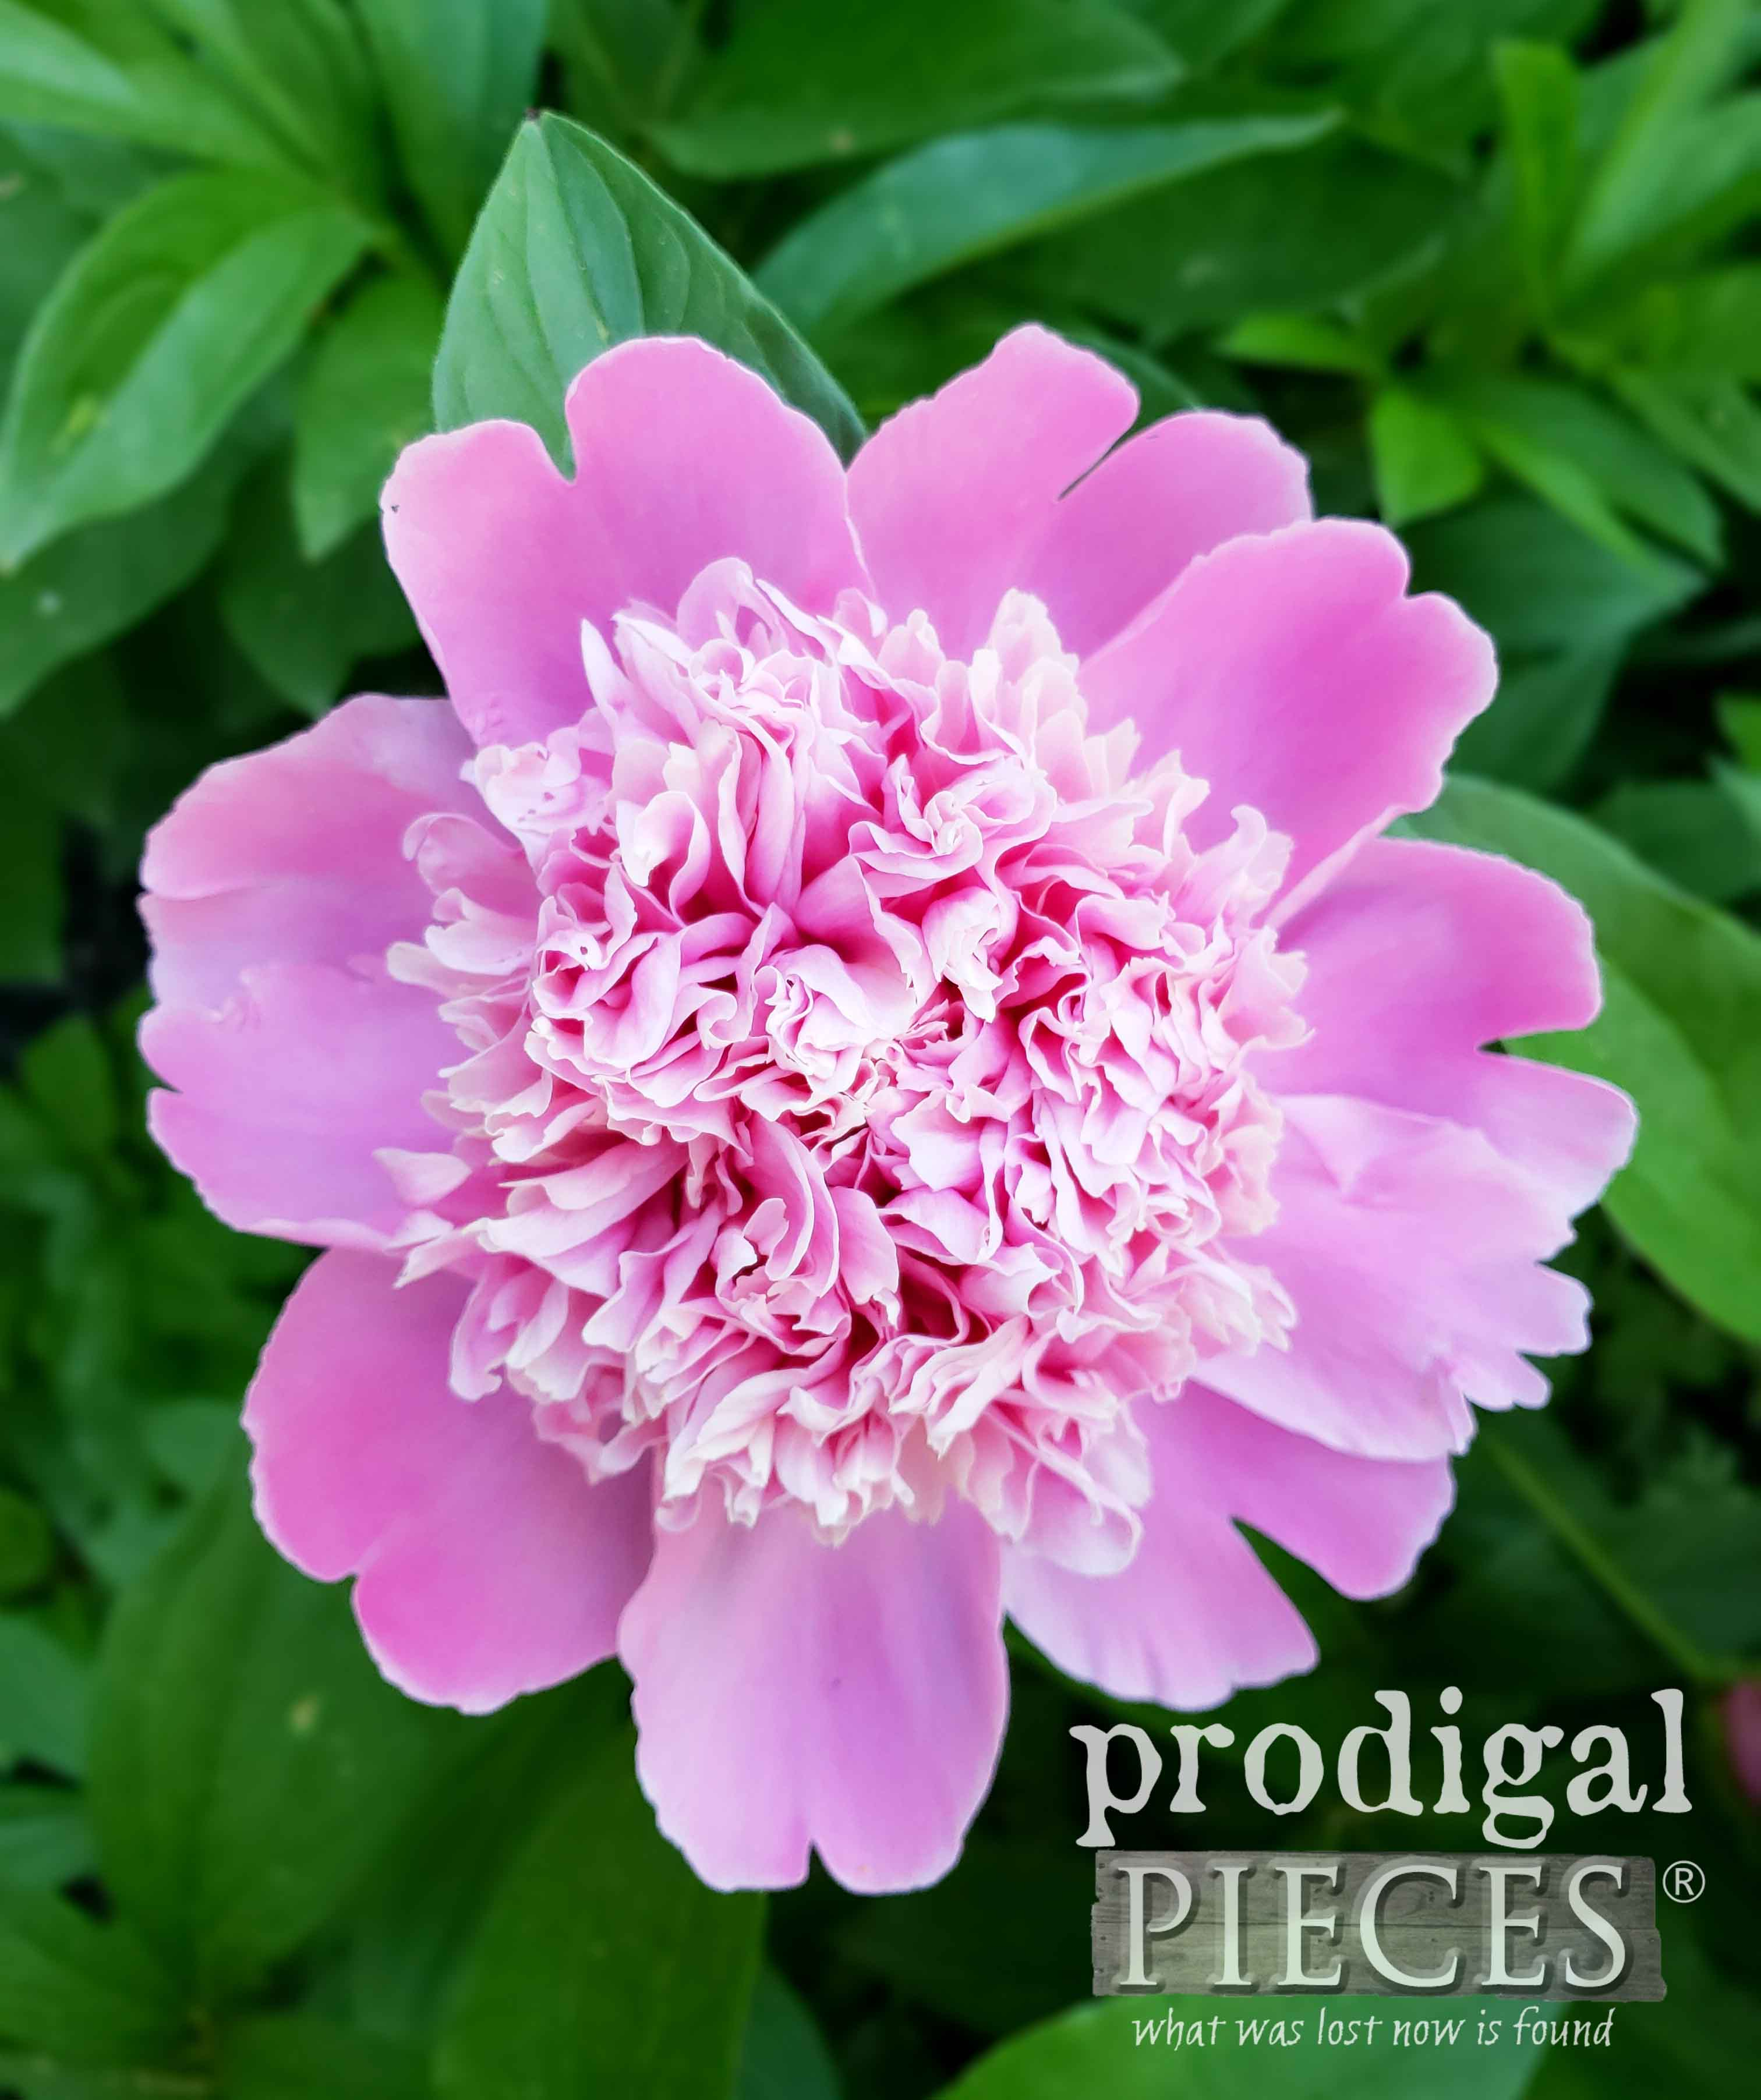 Stunning Light Pink Peony with Fluffy Bloom and Wonderful Scent by Larissa of Prodigal Pieces | prodigalpieces.com